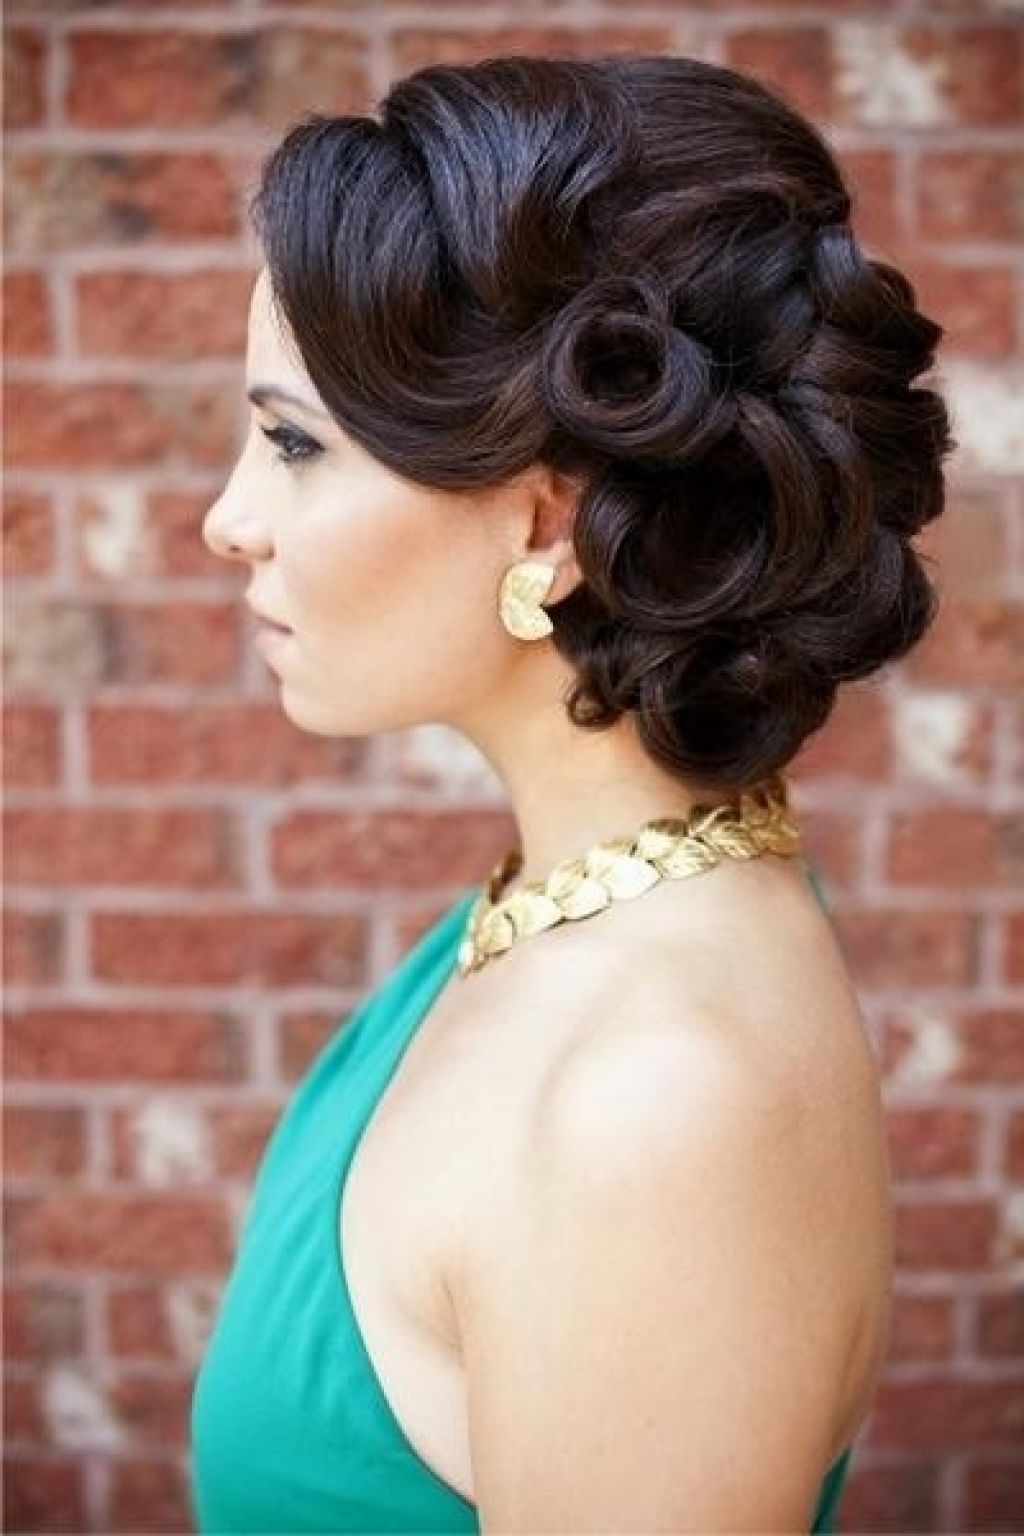 best 25+ retro updo ideas on pinterest | retro updo hairstyles